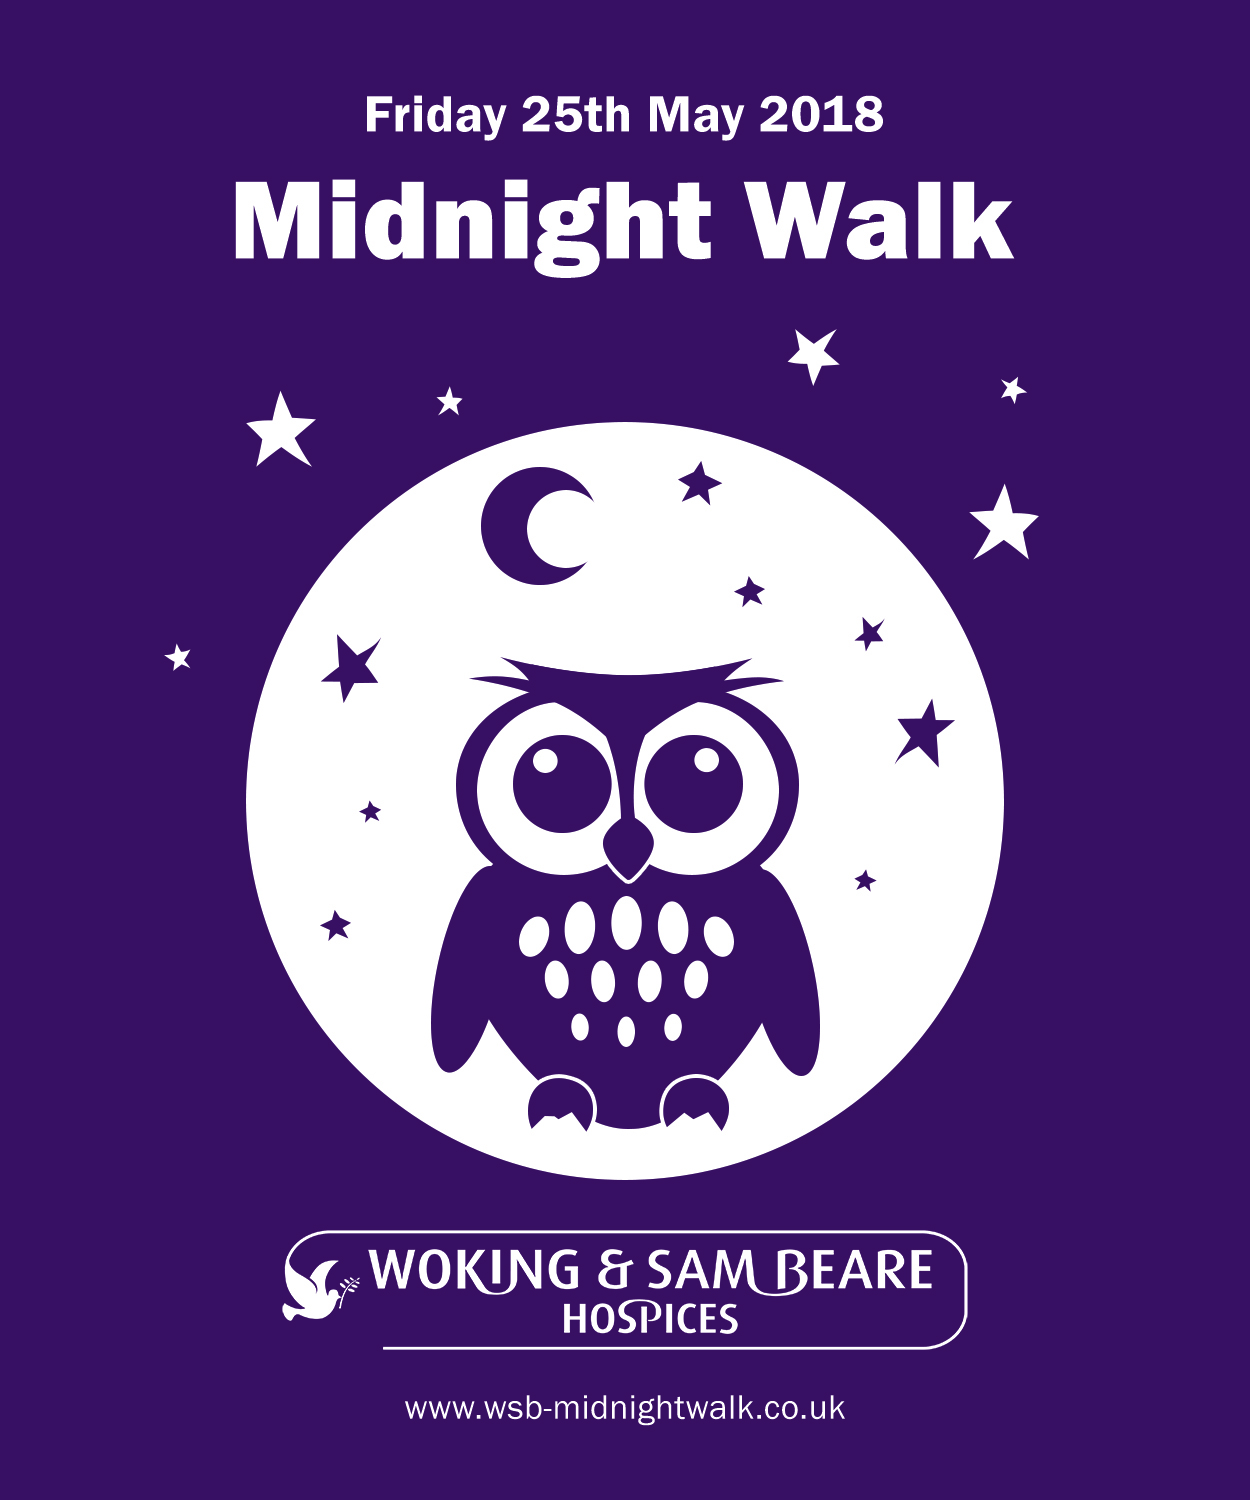 Midnight Walk – £18 early bird offer with glow-in-the-dark t-shirt!